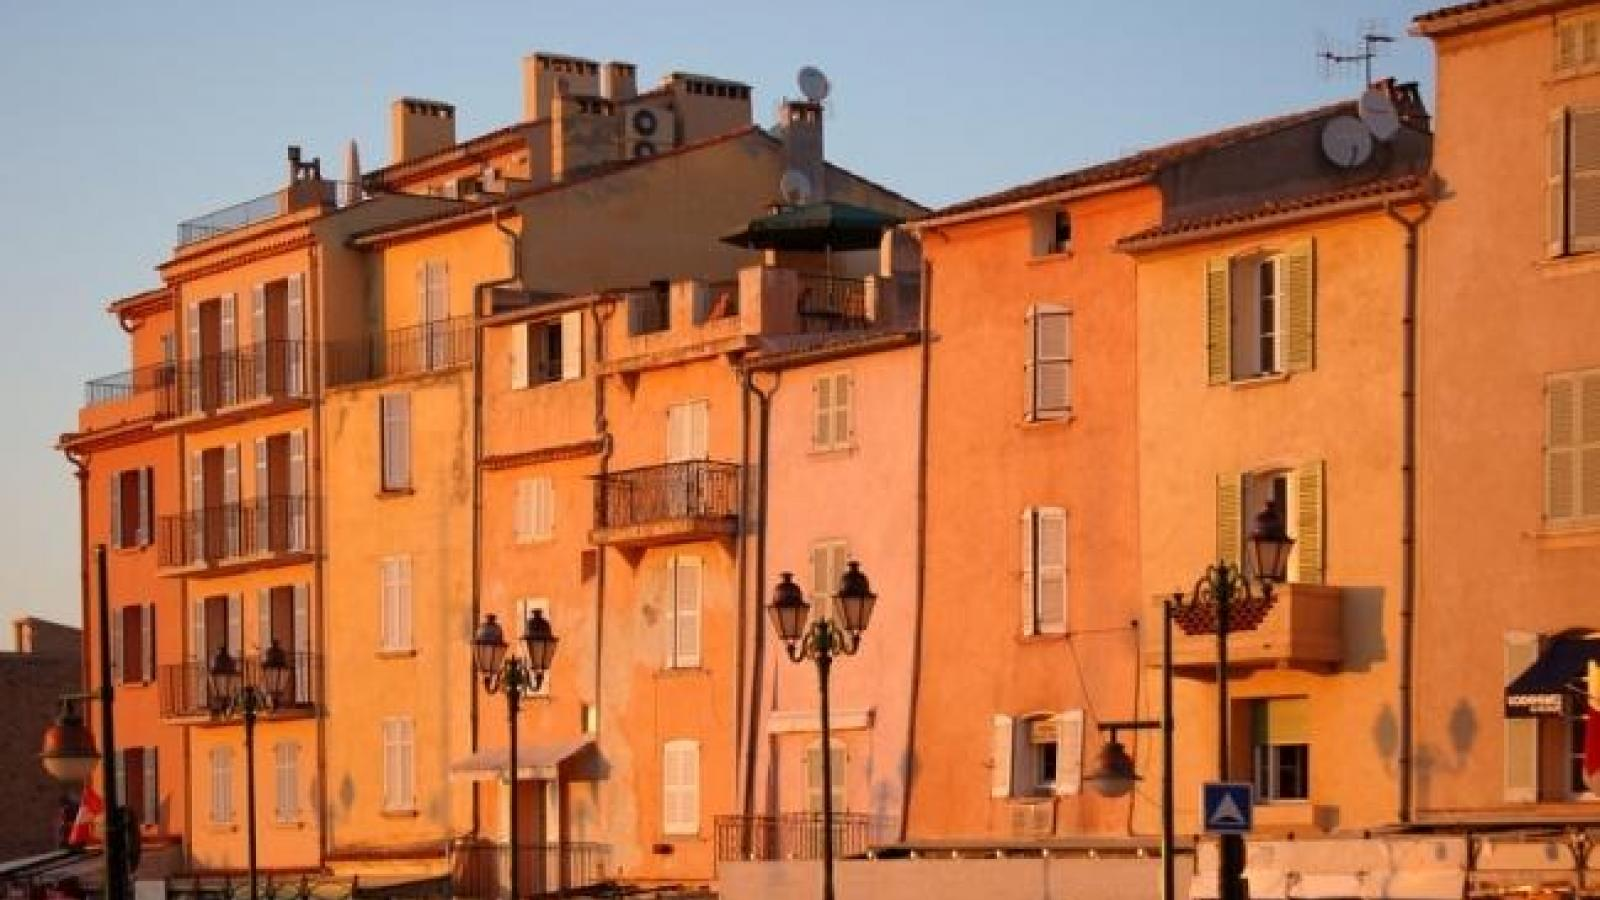 Saint Tropez hotel the Jewel of the Riviera